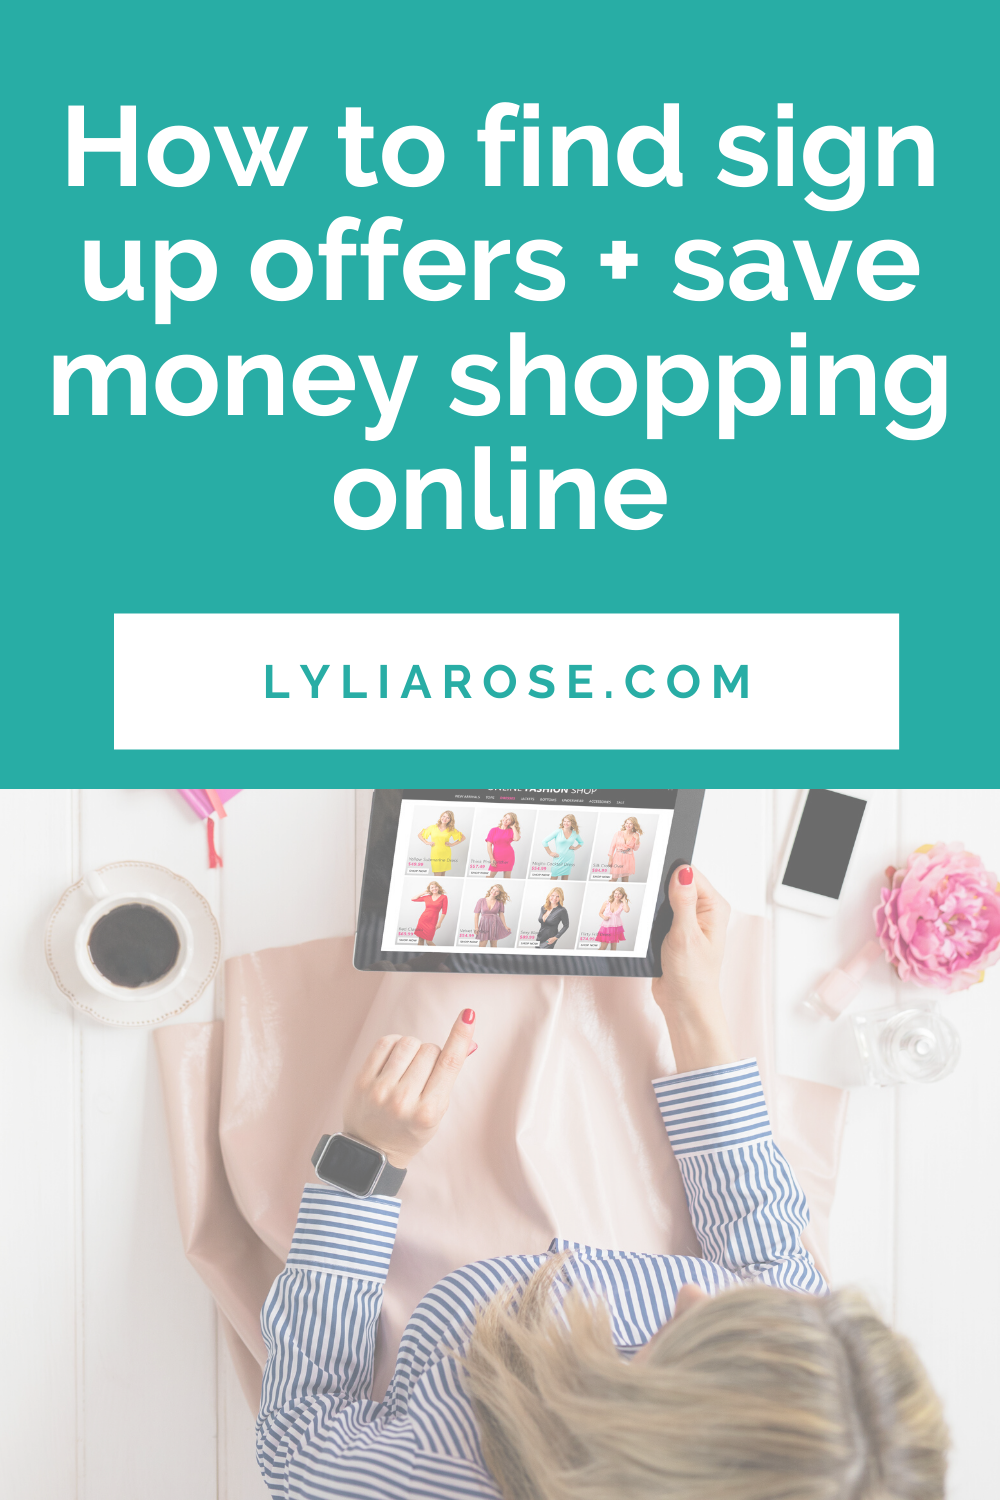 How to find sign up offers + save money shopping online